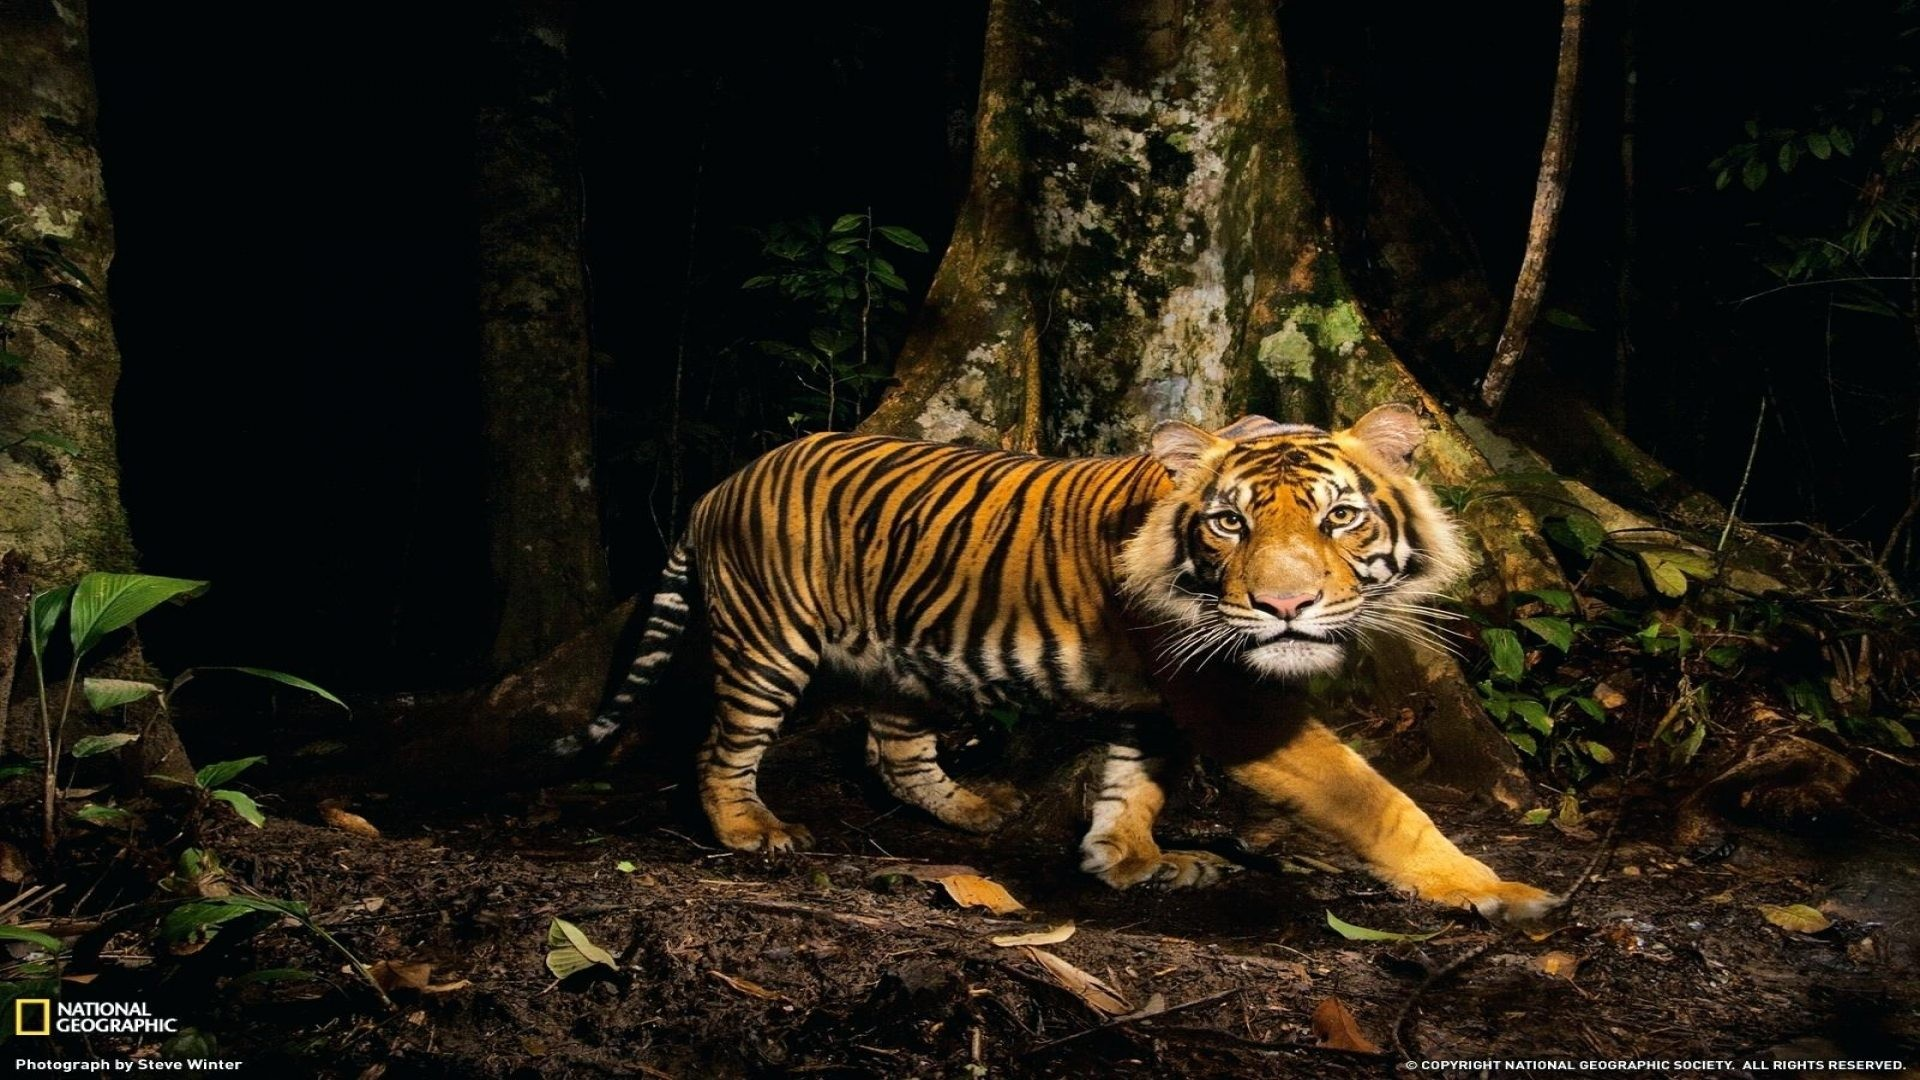 1920x1080, Forest Animal Wallpaper Full Nature Wallpapers - National Geographic Tiger Photography - HD Wallpaper